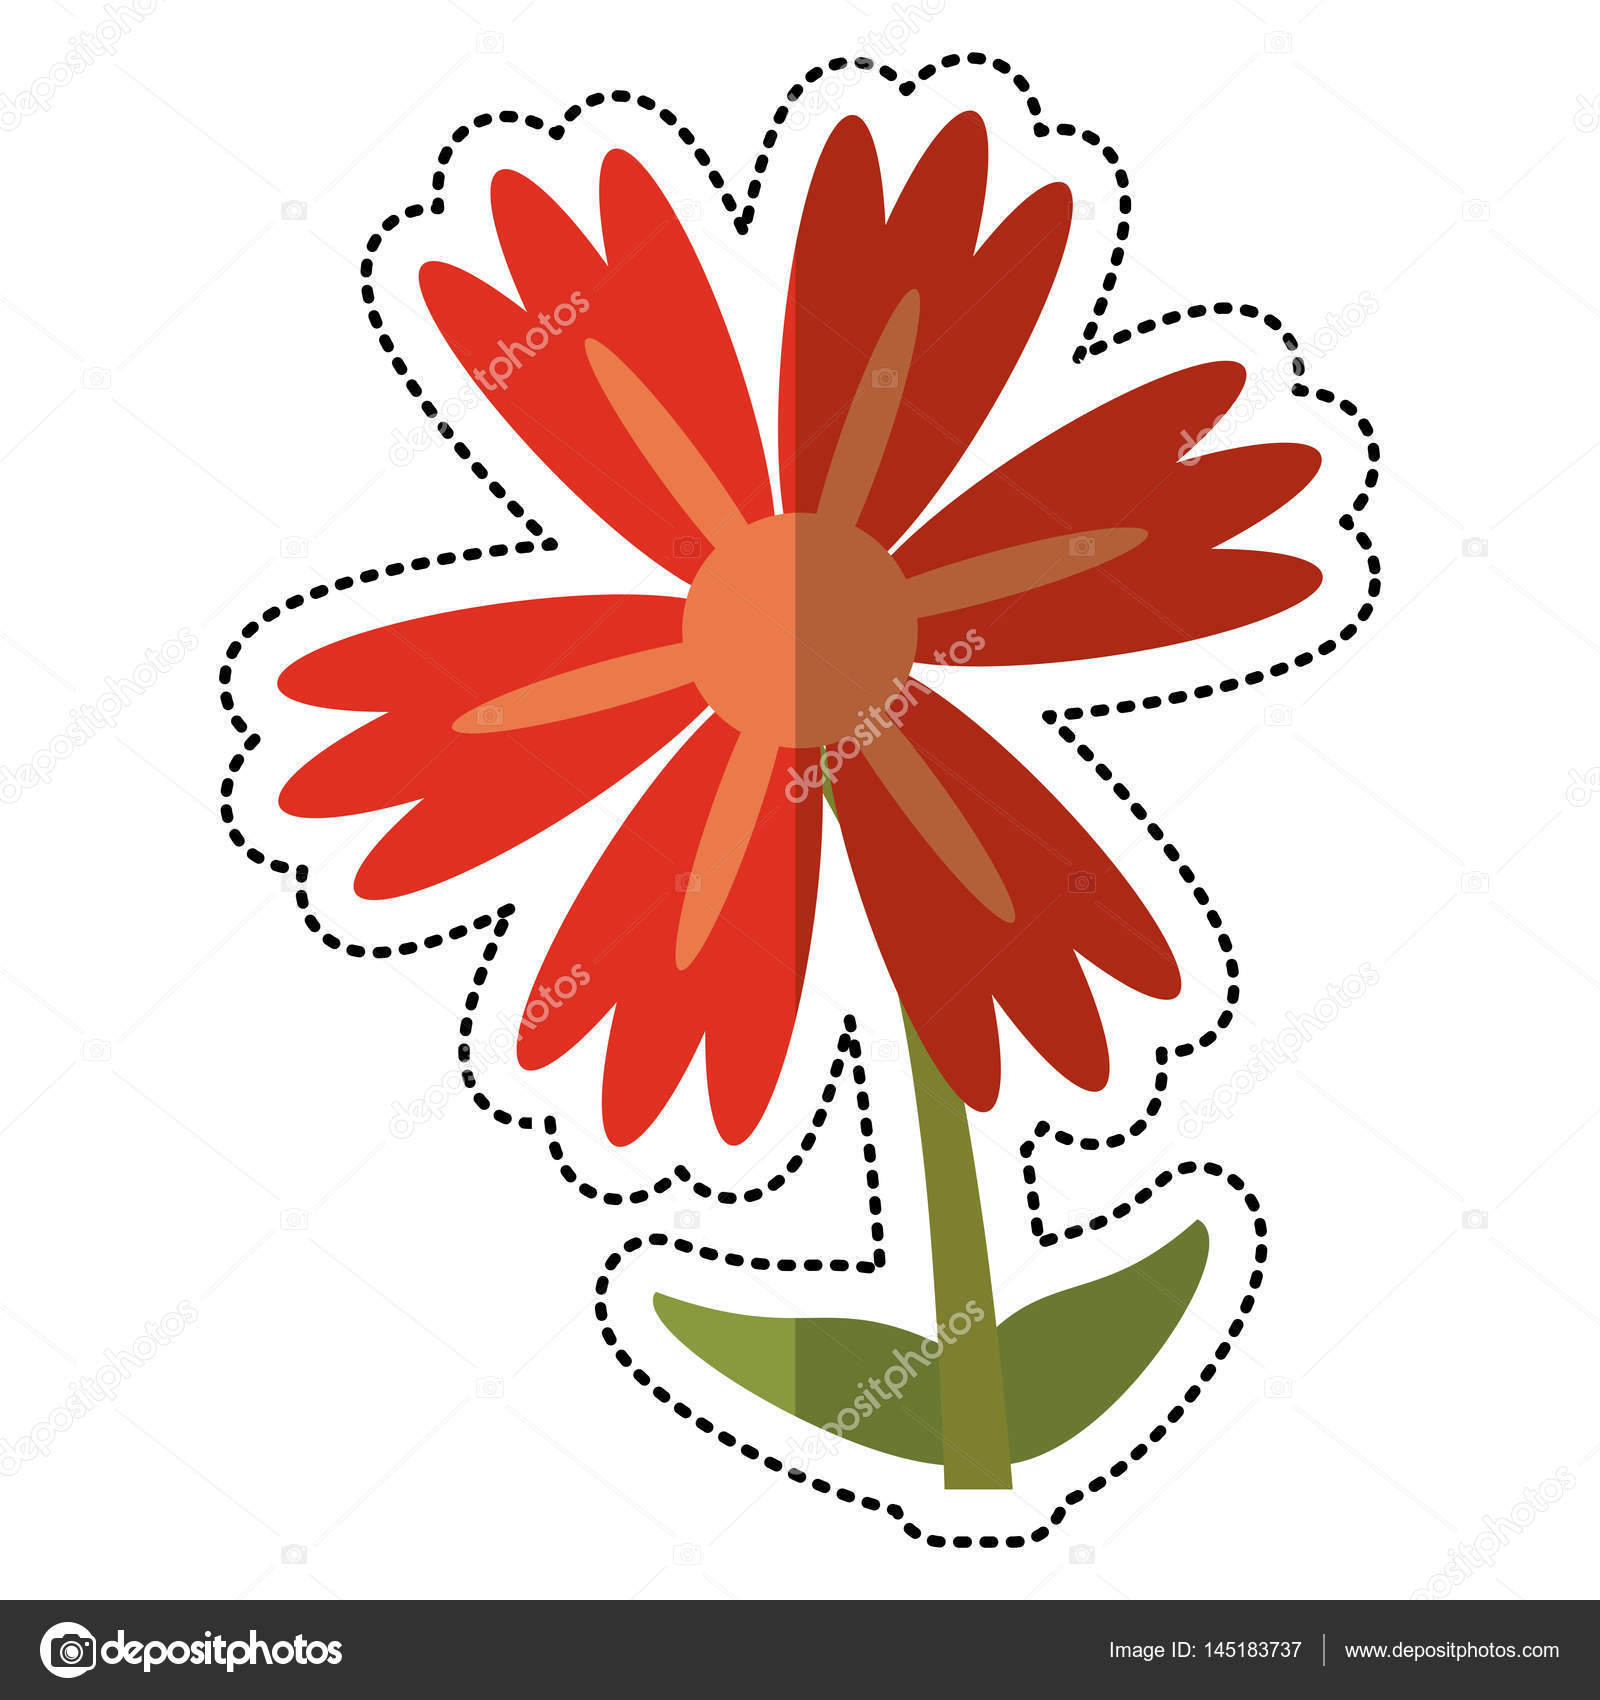 Cartoon lily flower natural stock vector jemastock 145183737 cartoon lily flower natural vector illustration eps 10 vector by jemastock izmirmasajfo